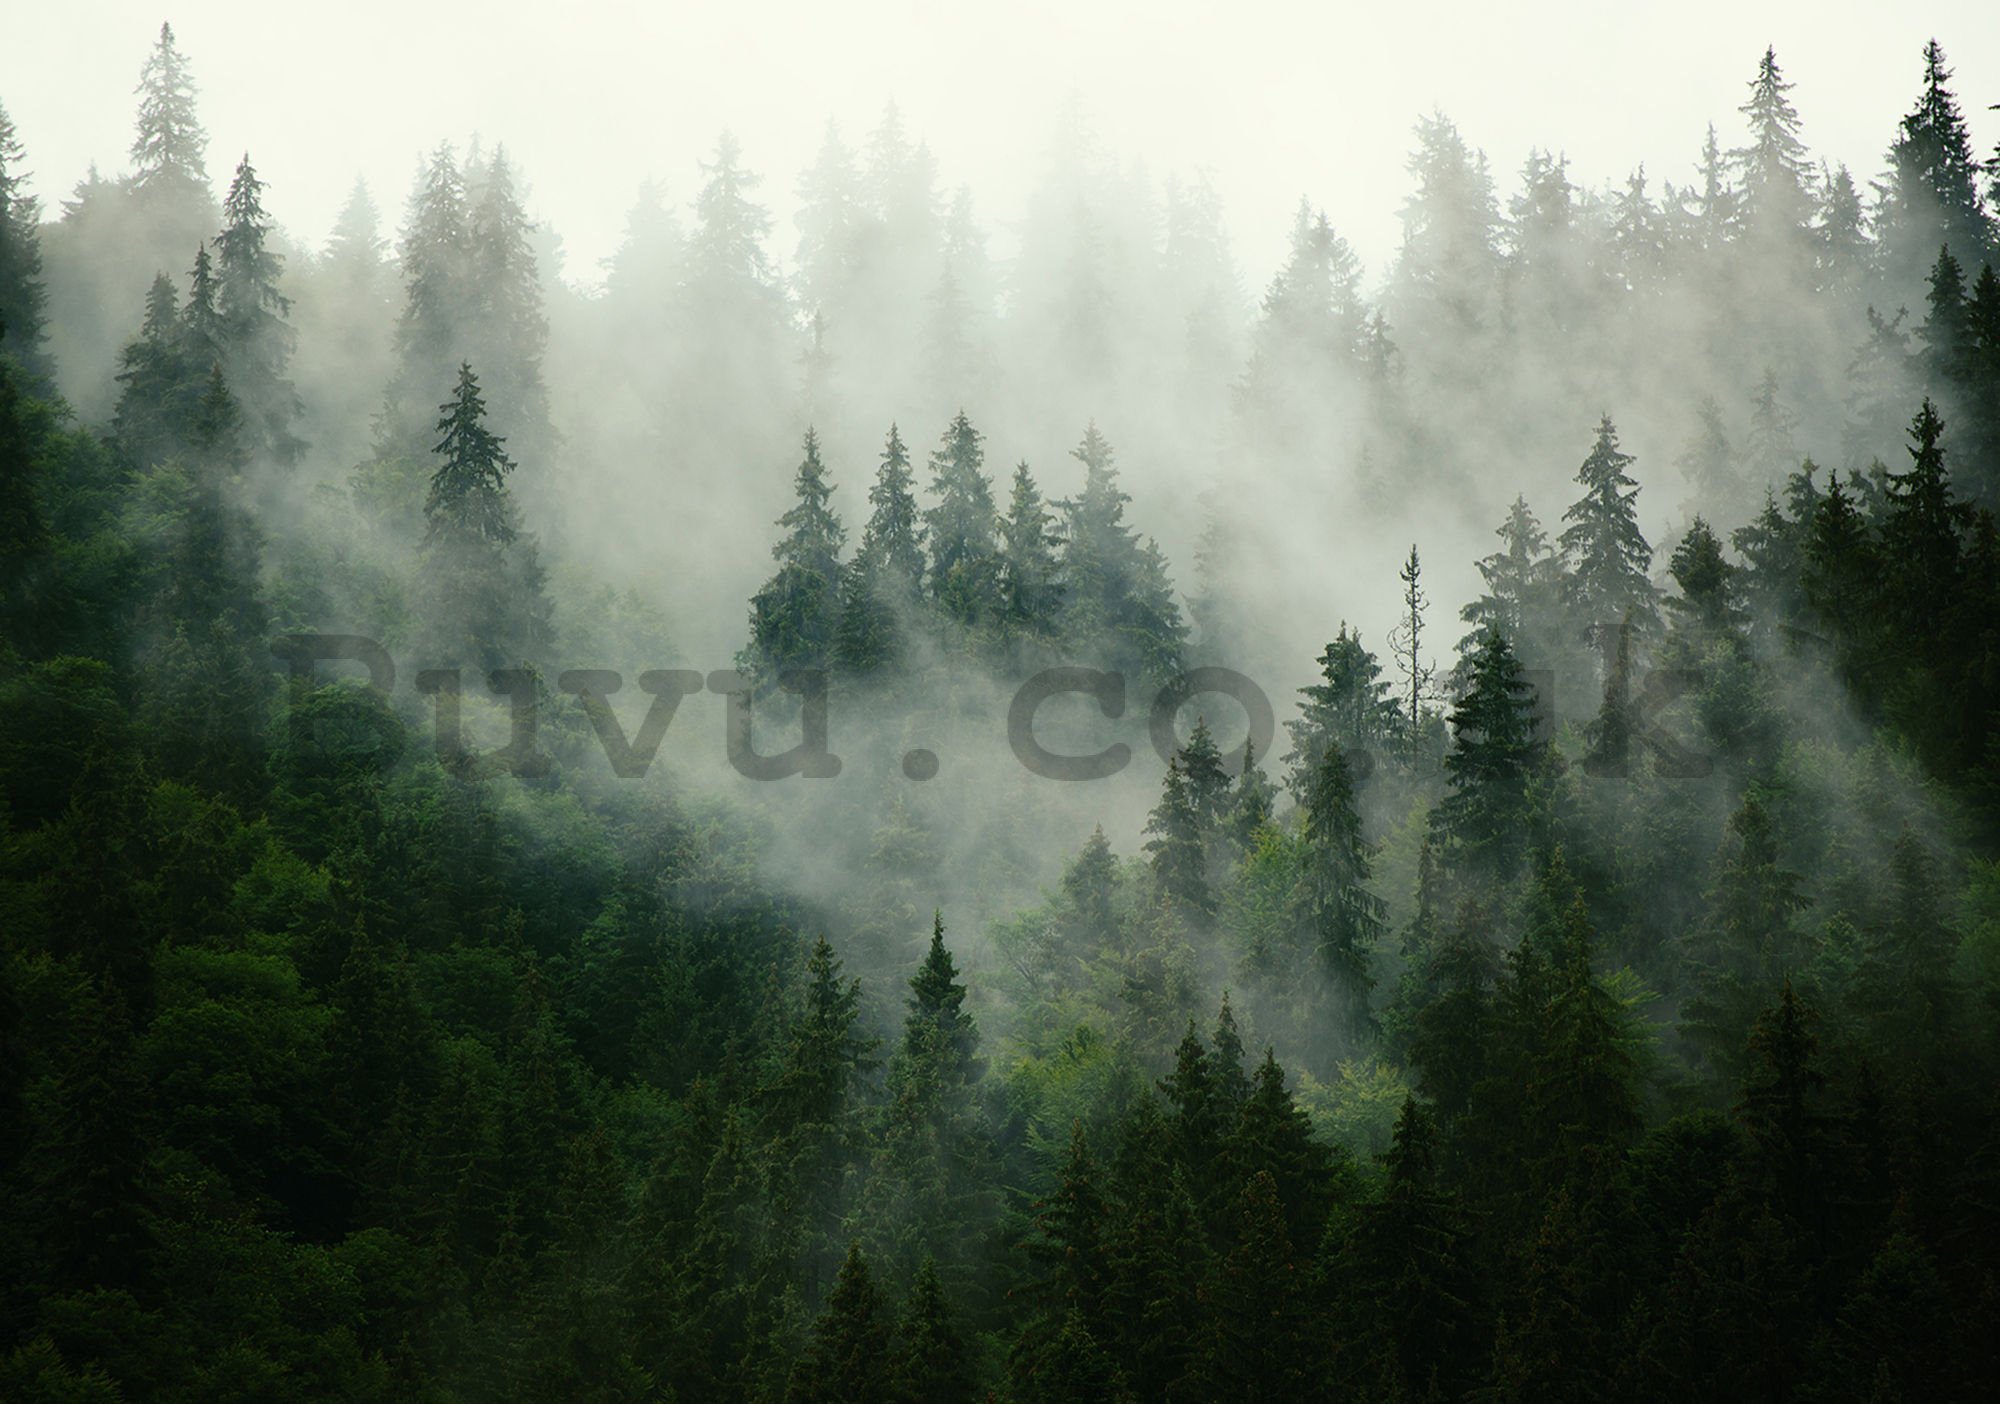 Wall mural vlies: Fog over the forest (1) - 416x254 cm